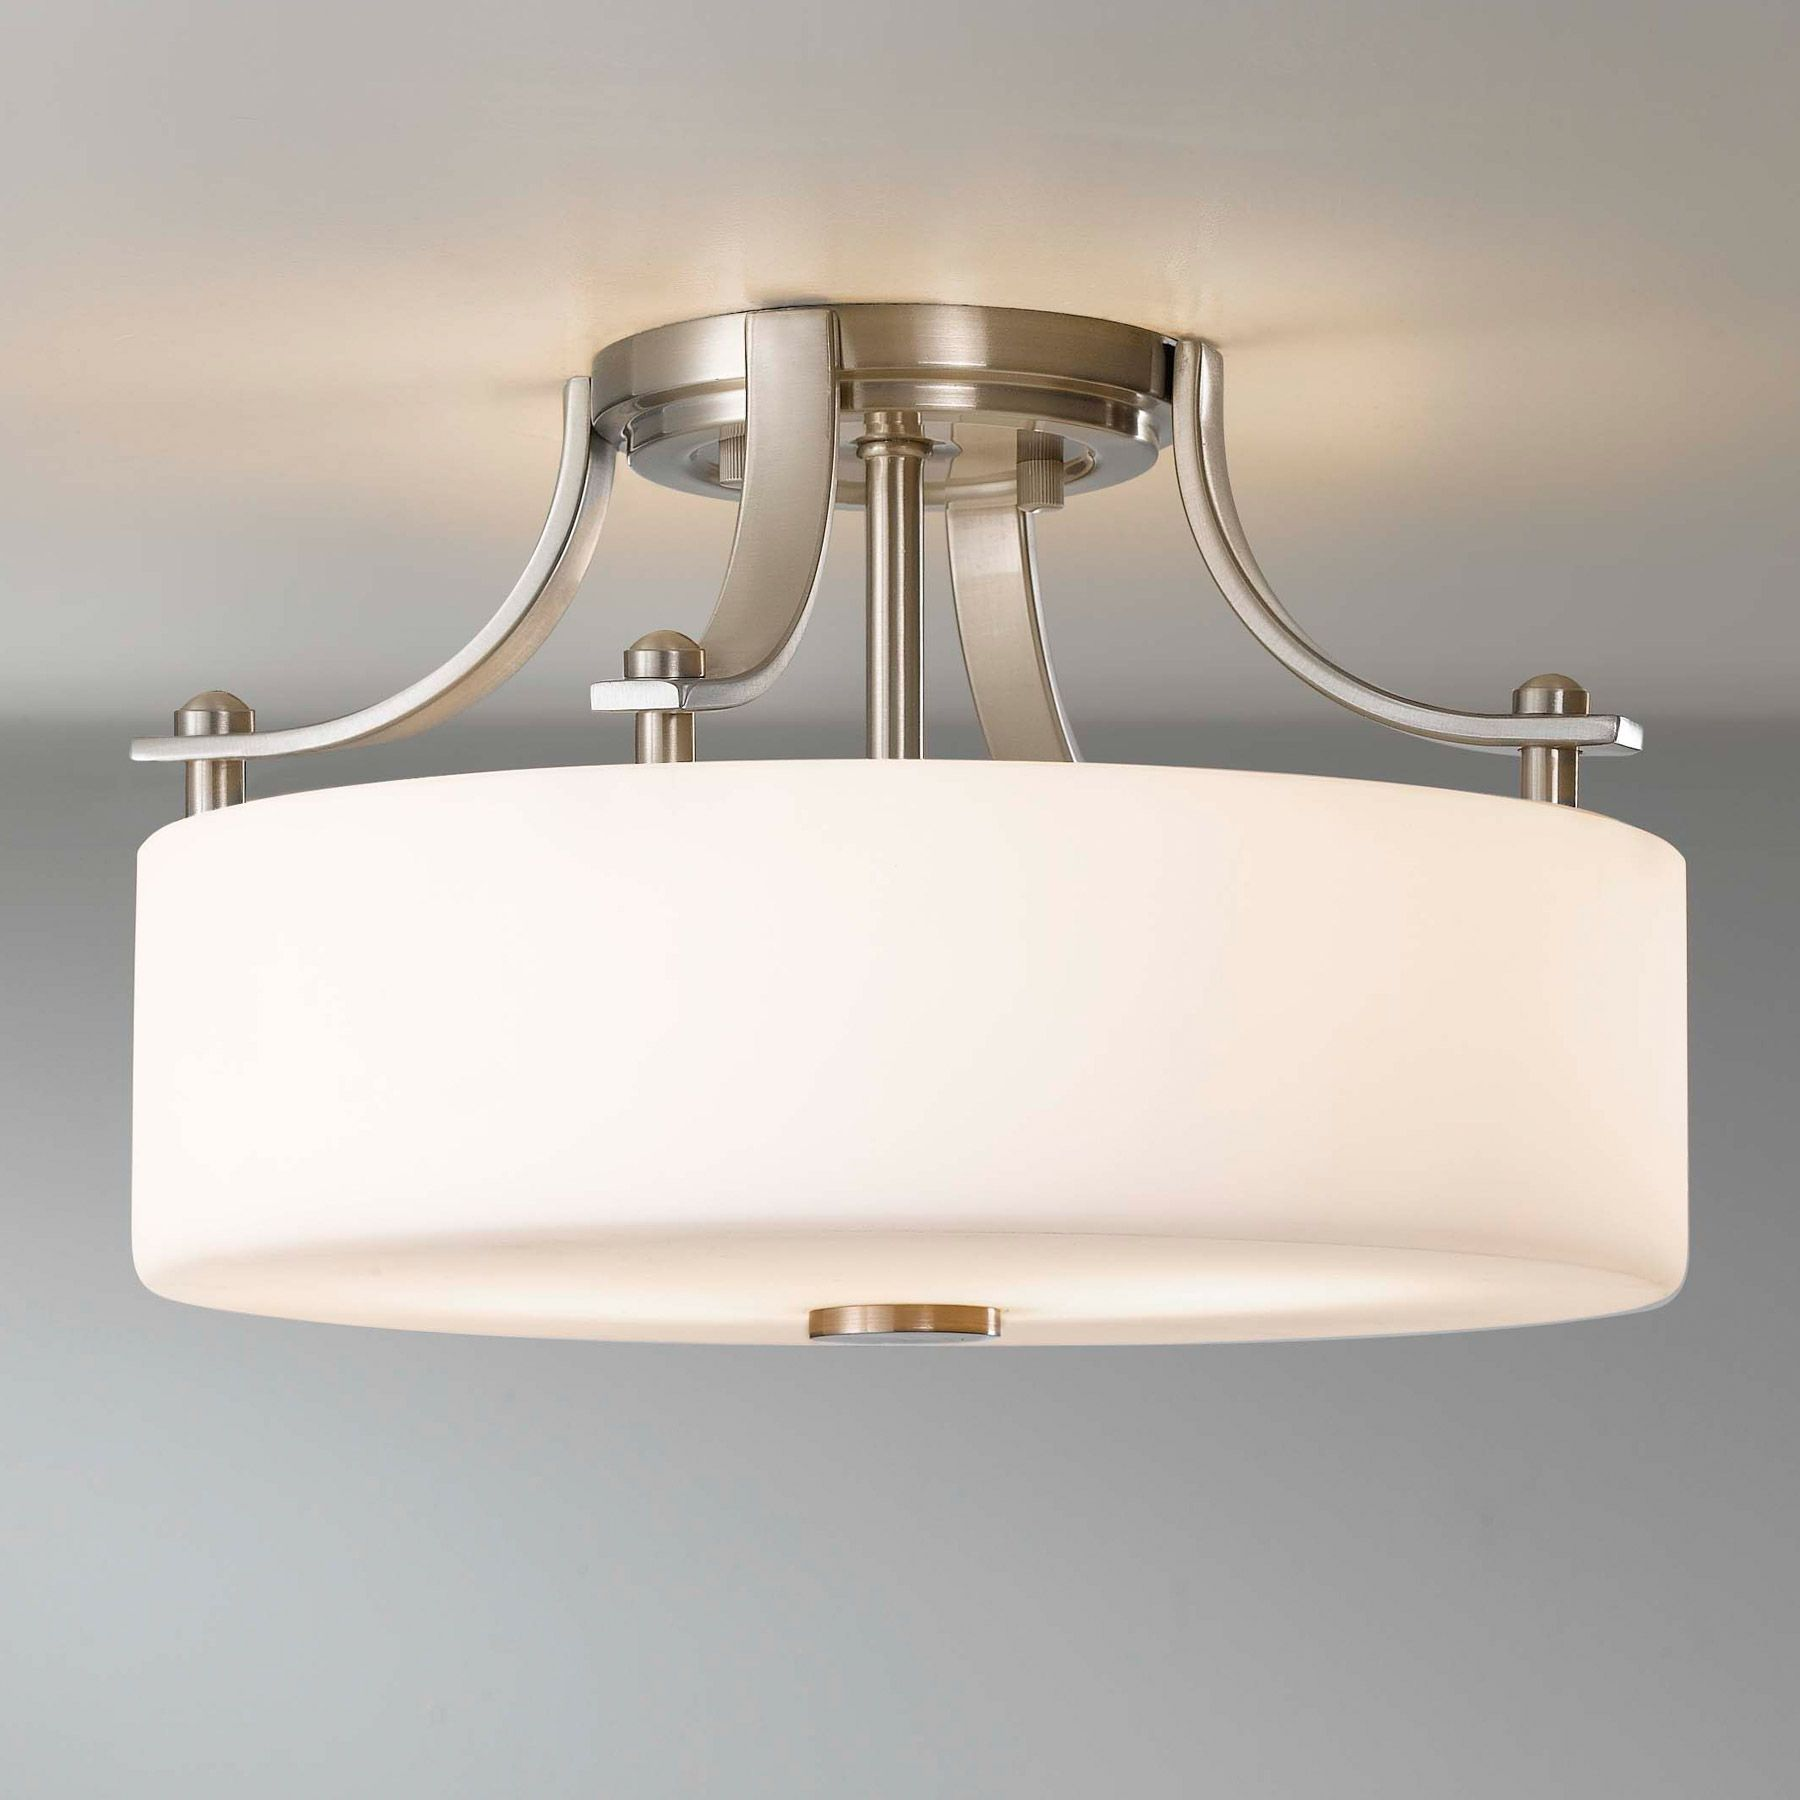 Ceiling Light Canopy White Flushmount Light Fixture Flush Mount Ceiling Light